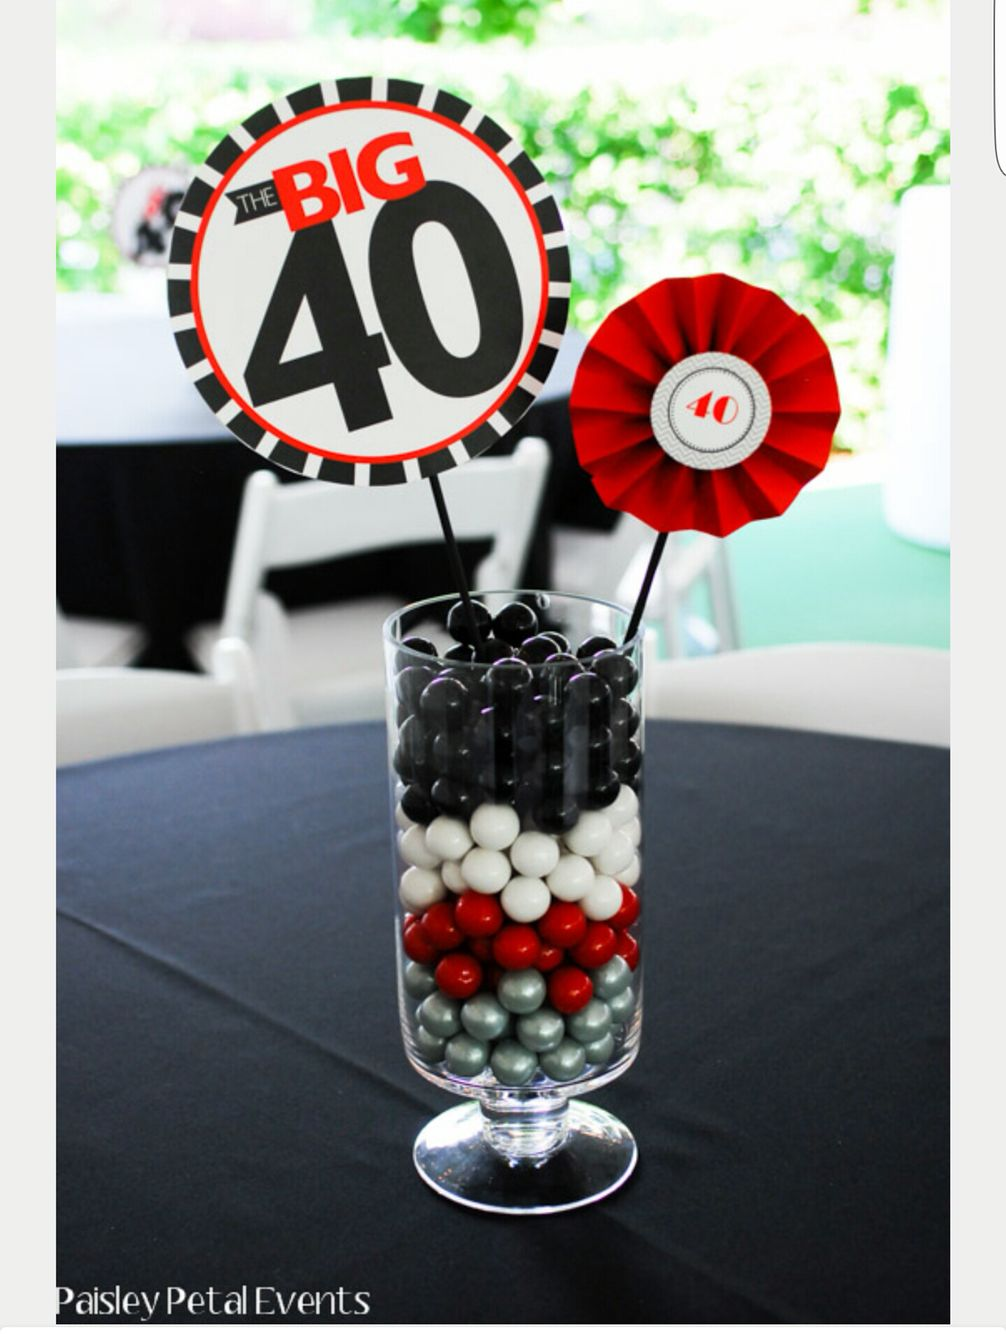 Pin by Beth Dunbarr on Party ideas 40th birthday party